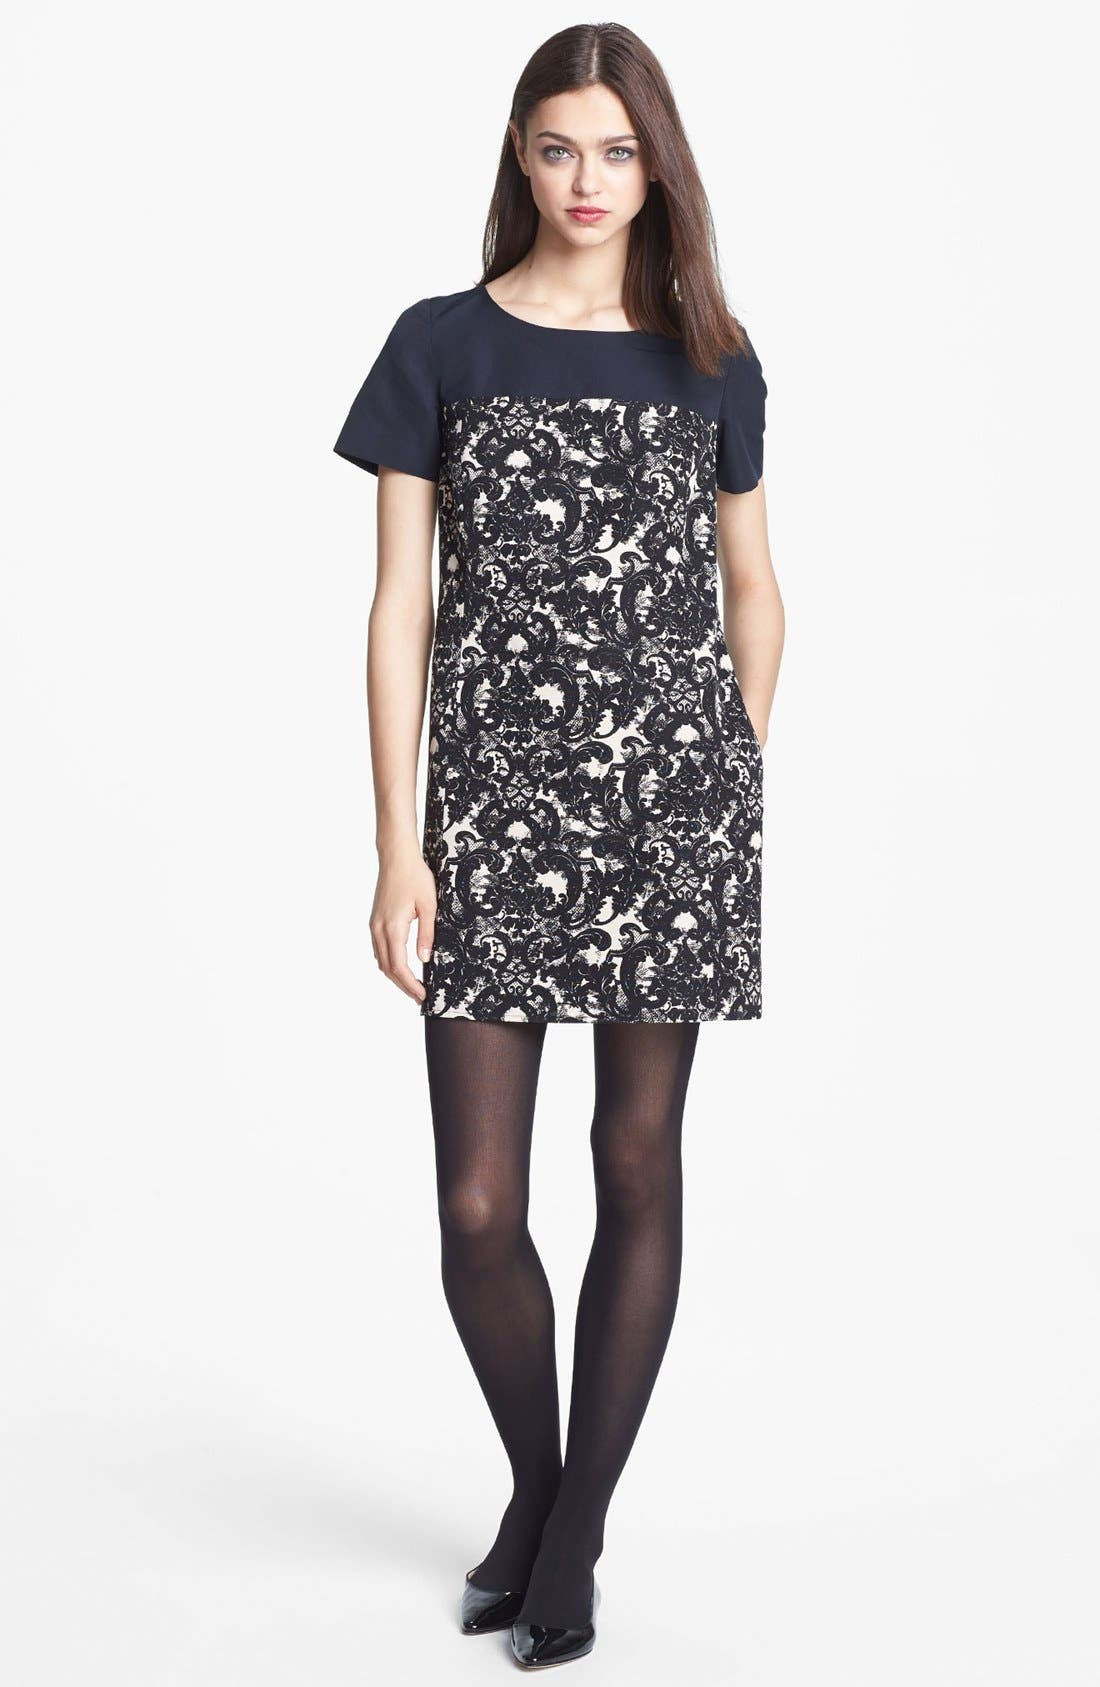 Alternate Image 1 Selected - Miss Wu 'Vera' Lace Print Colorblock Dress (Nordstrom Exclusive)